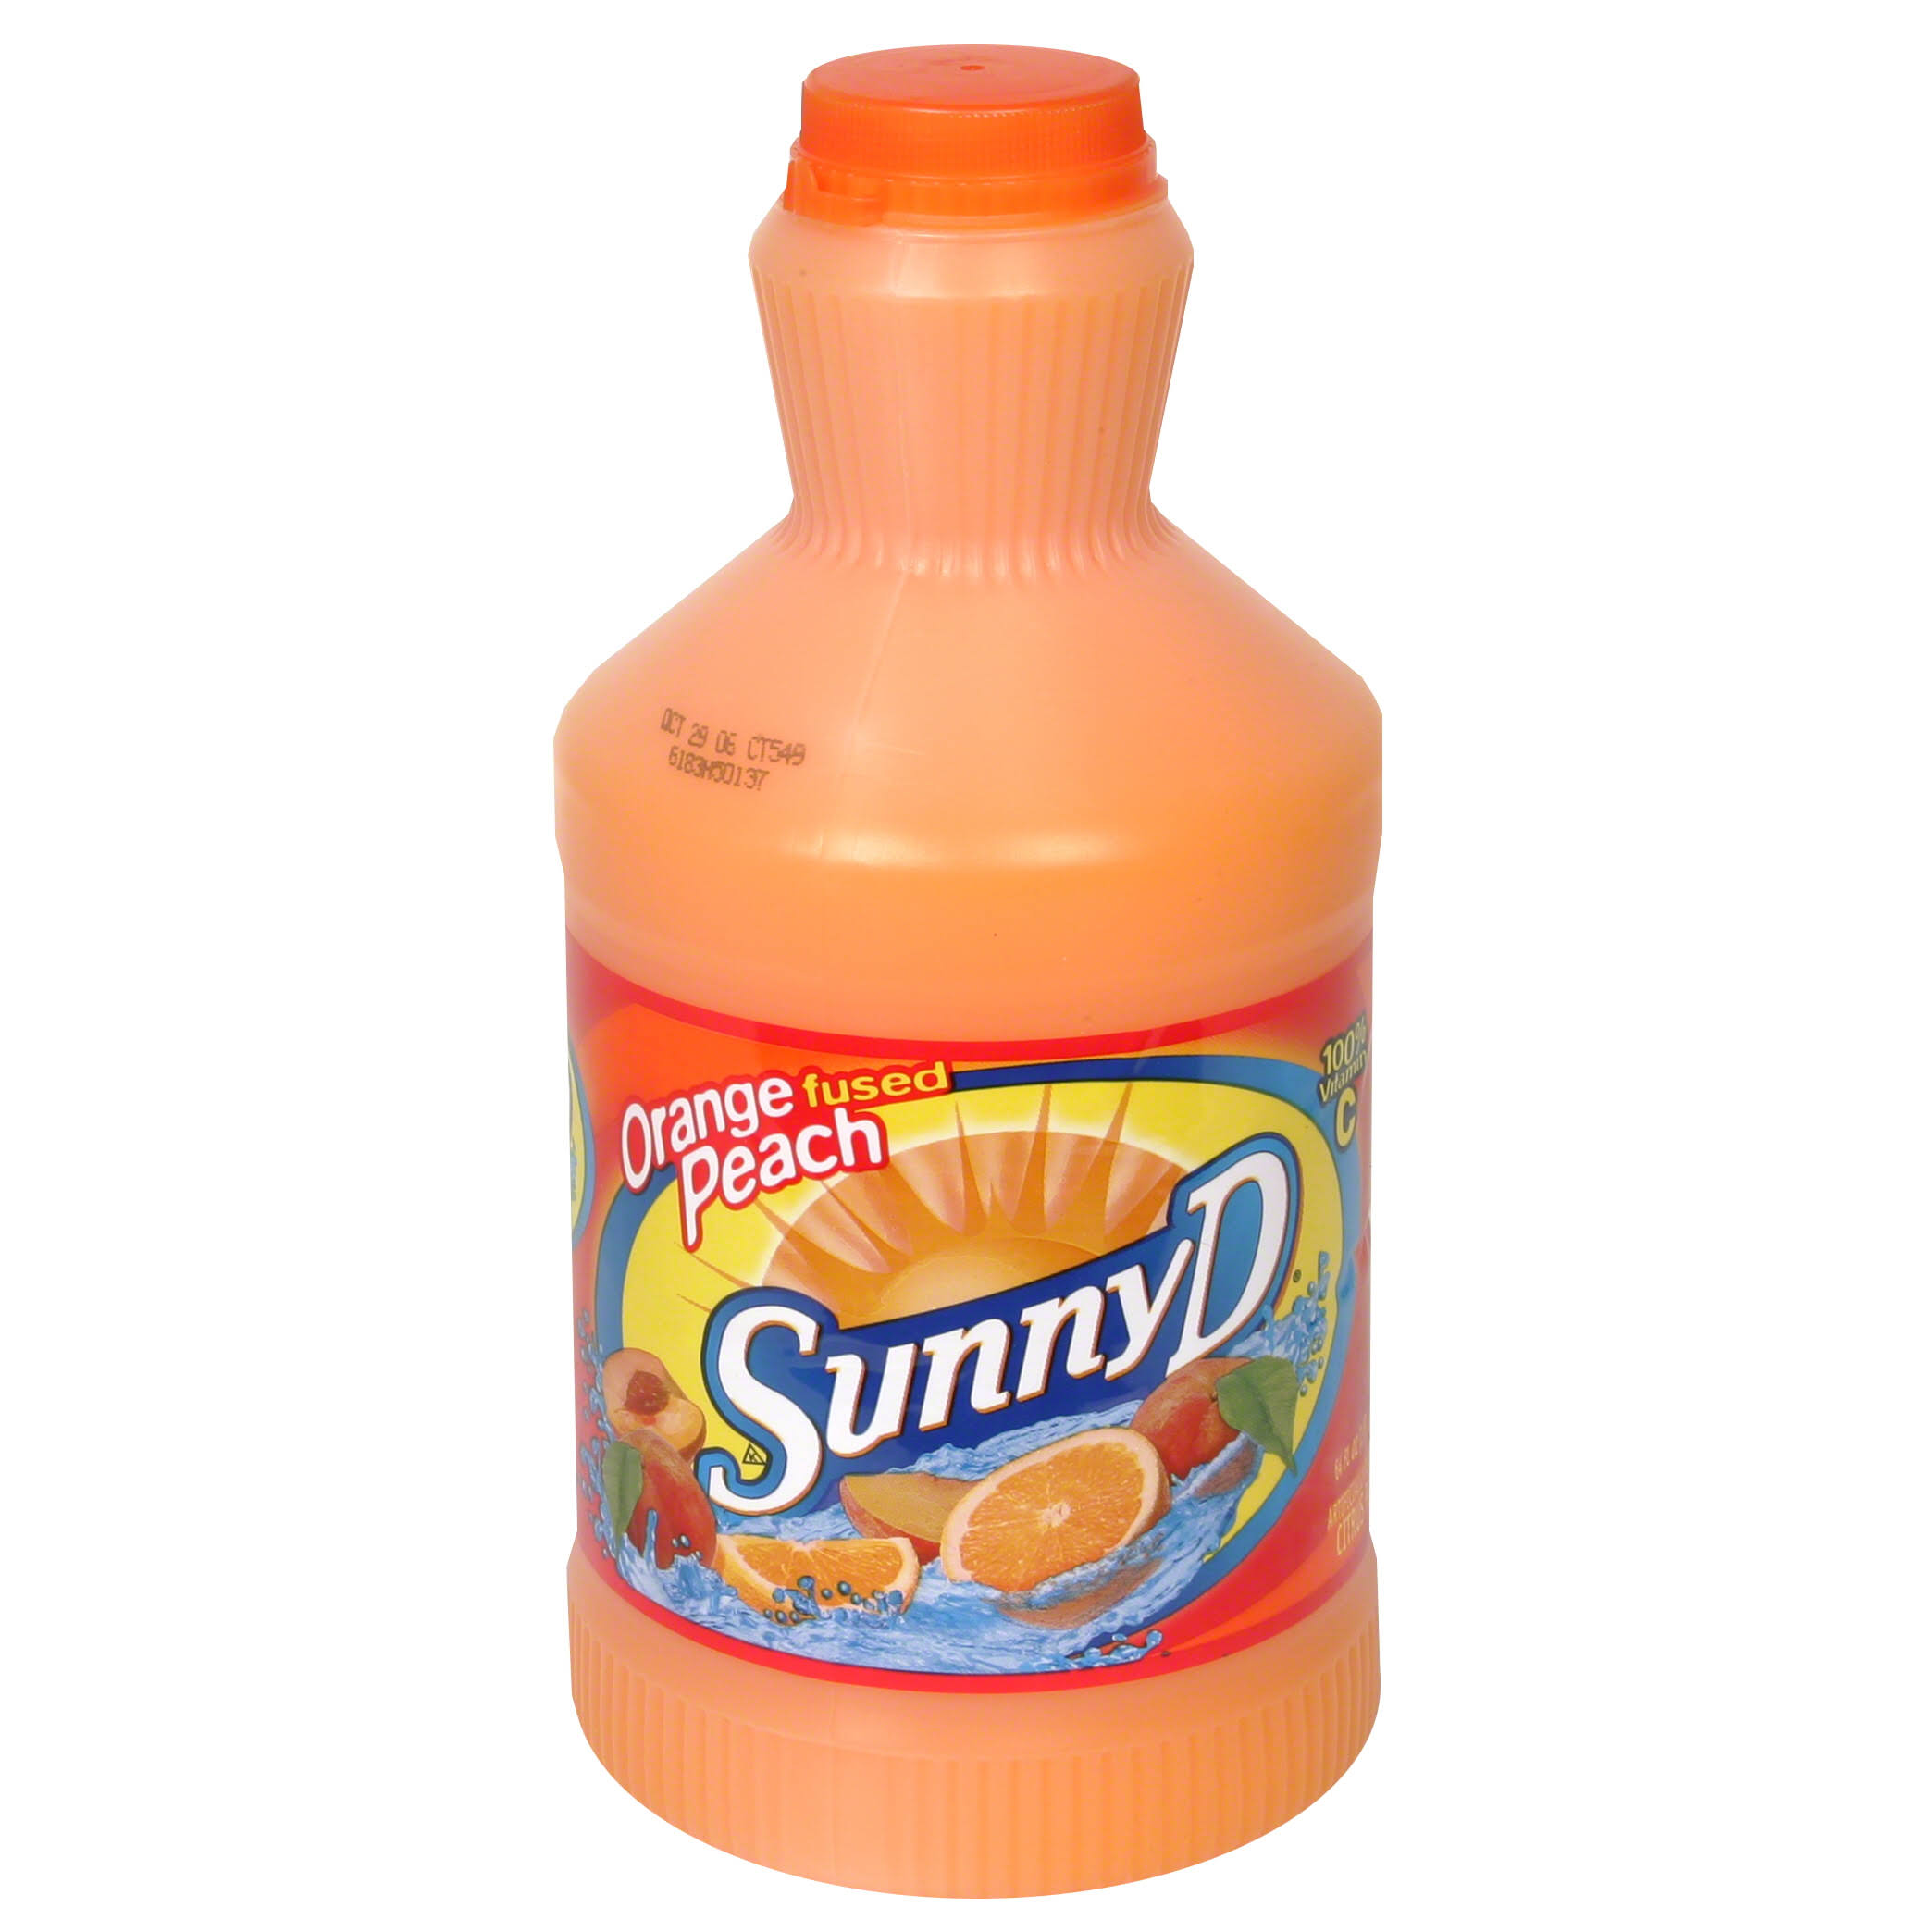 Sunny D Citrus Punch, Orange Fused Peach - 64 fl oz